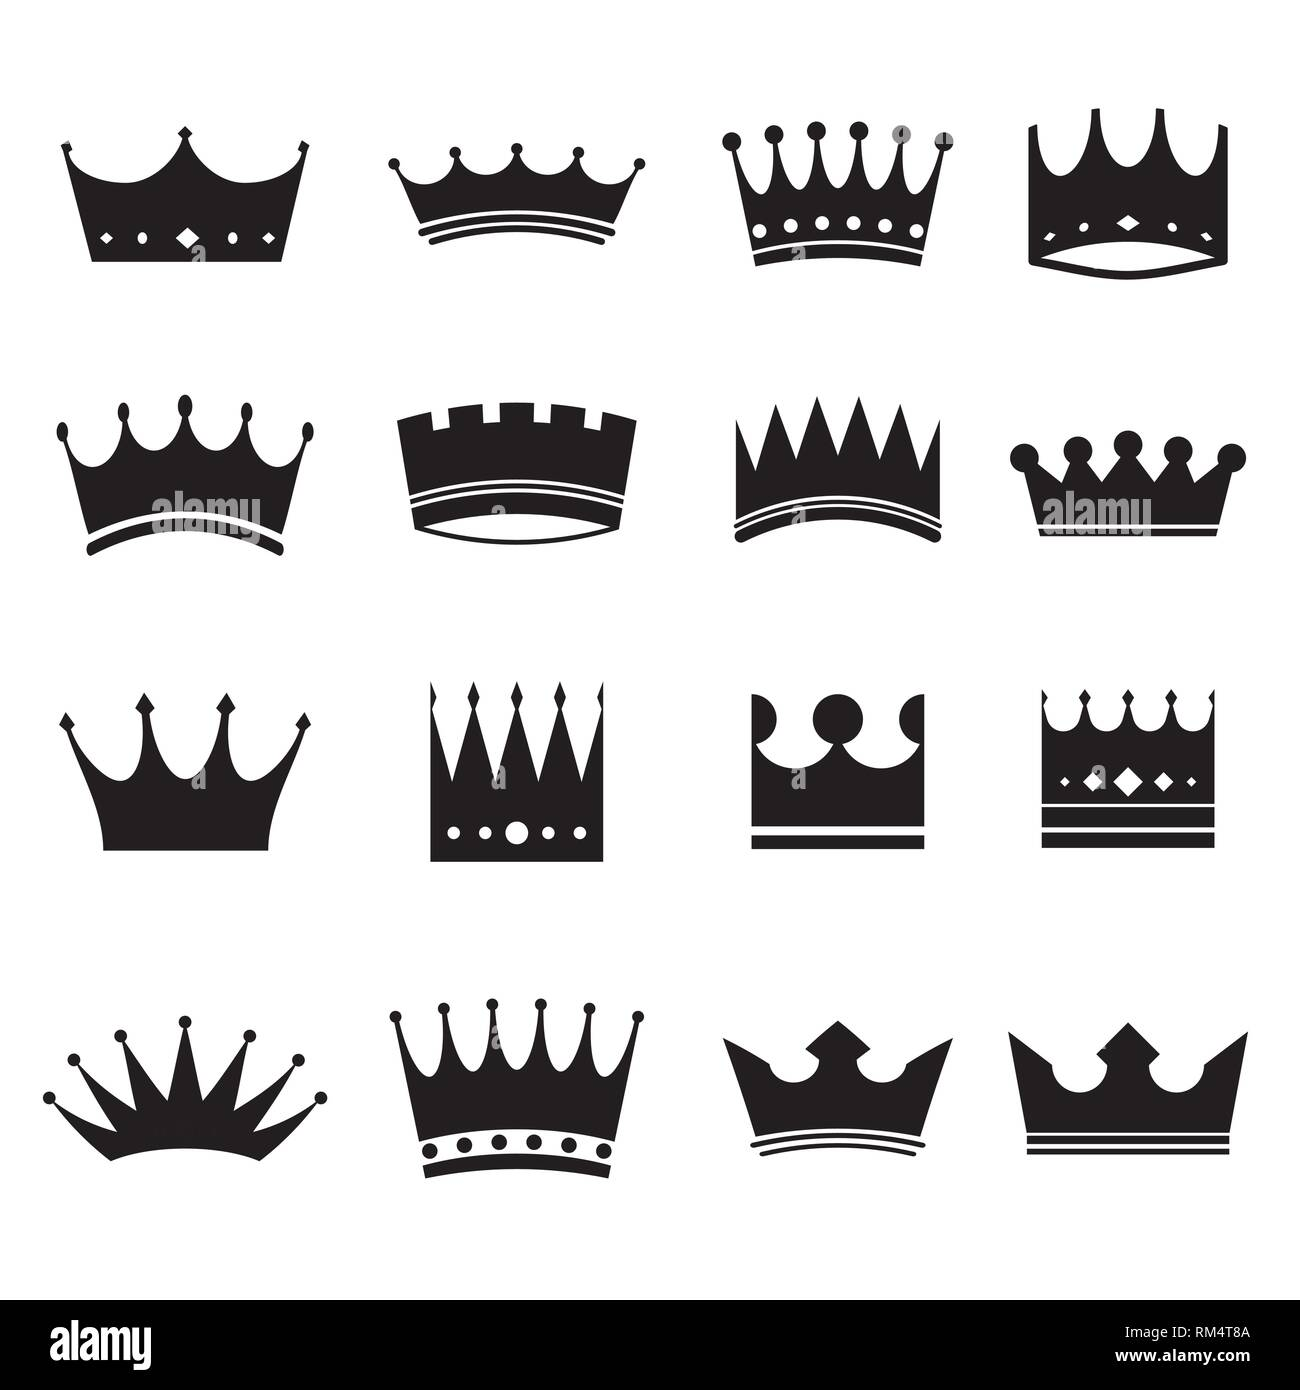 Set of modern crowns icons - Stock Vector